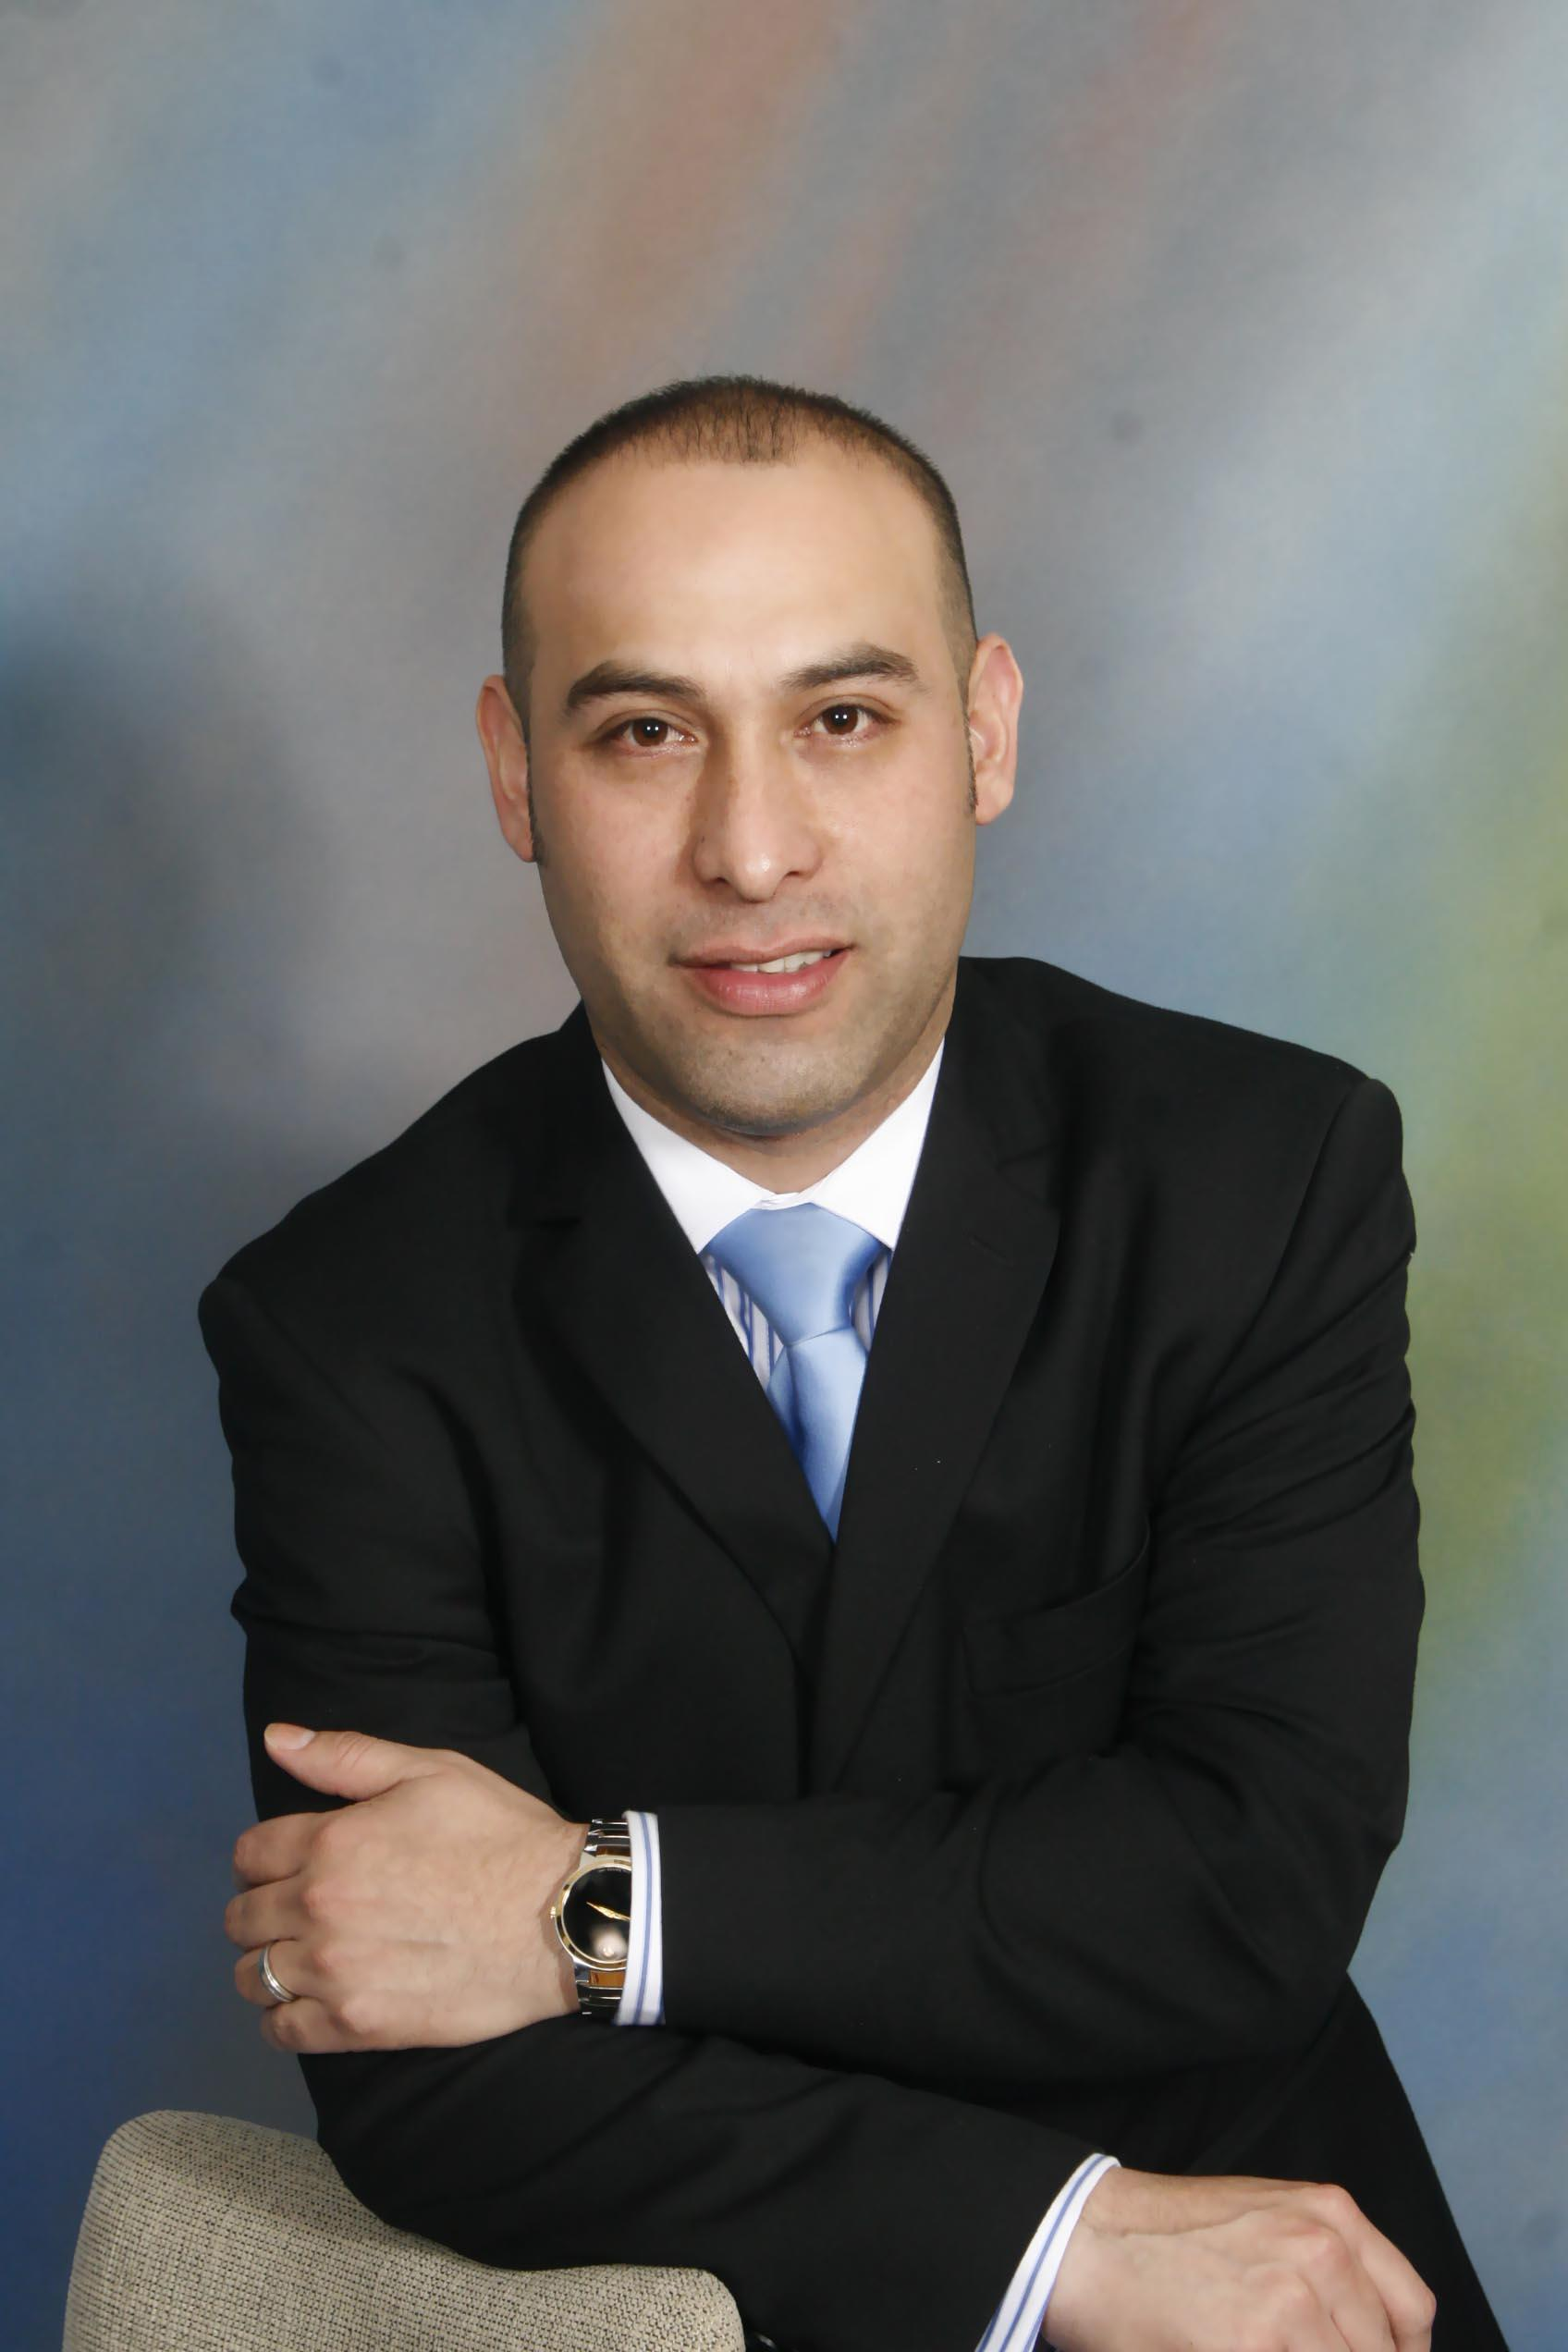 CARLOS JHON MUHLIG  Your Financial Professional & Insurance Agent